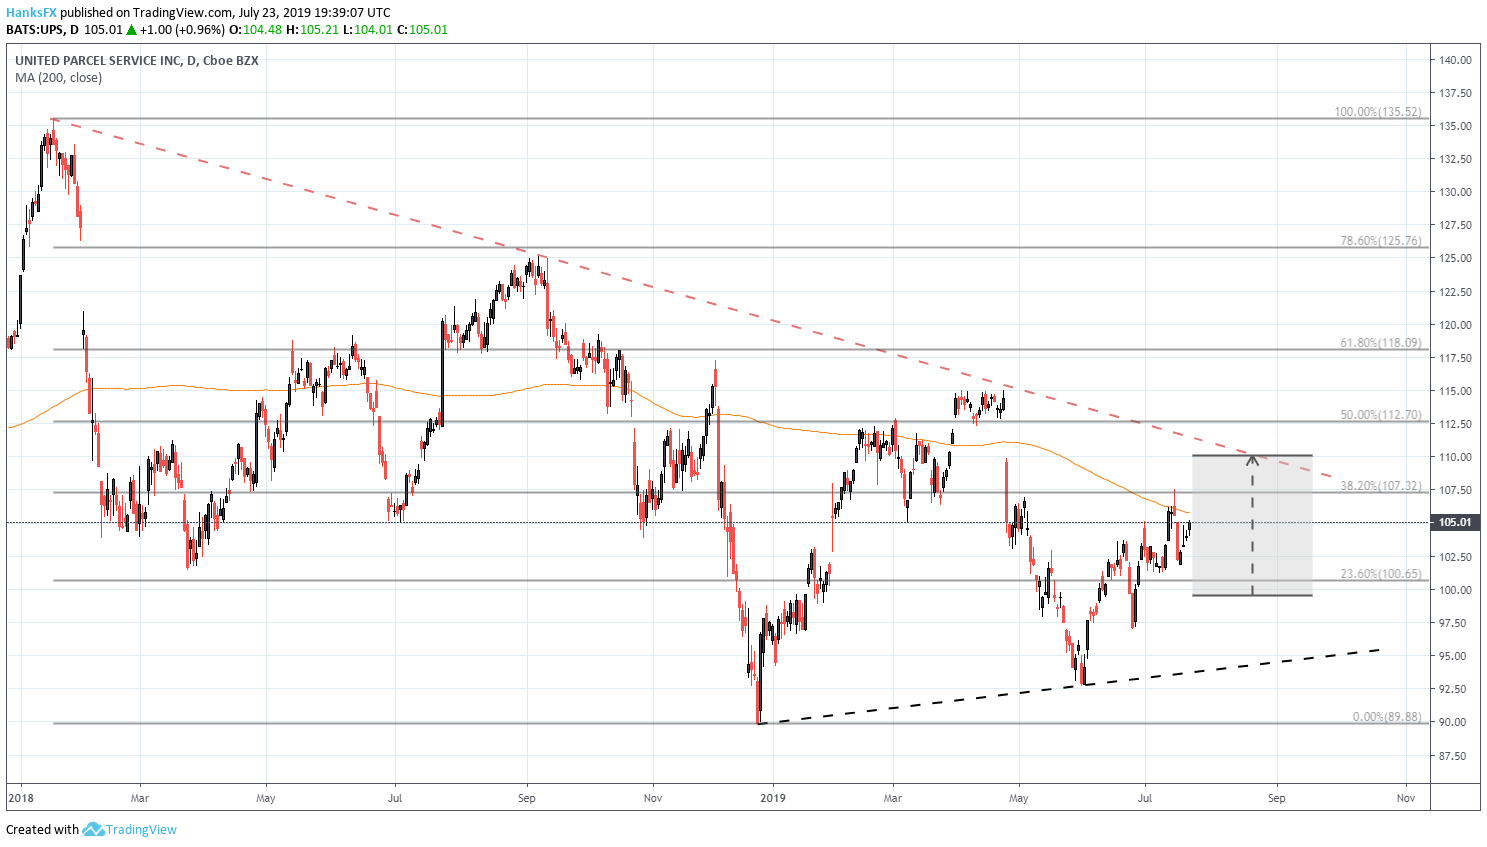 Dow Jones Earnings to Offer Insight on Global Growth & Trade Wars